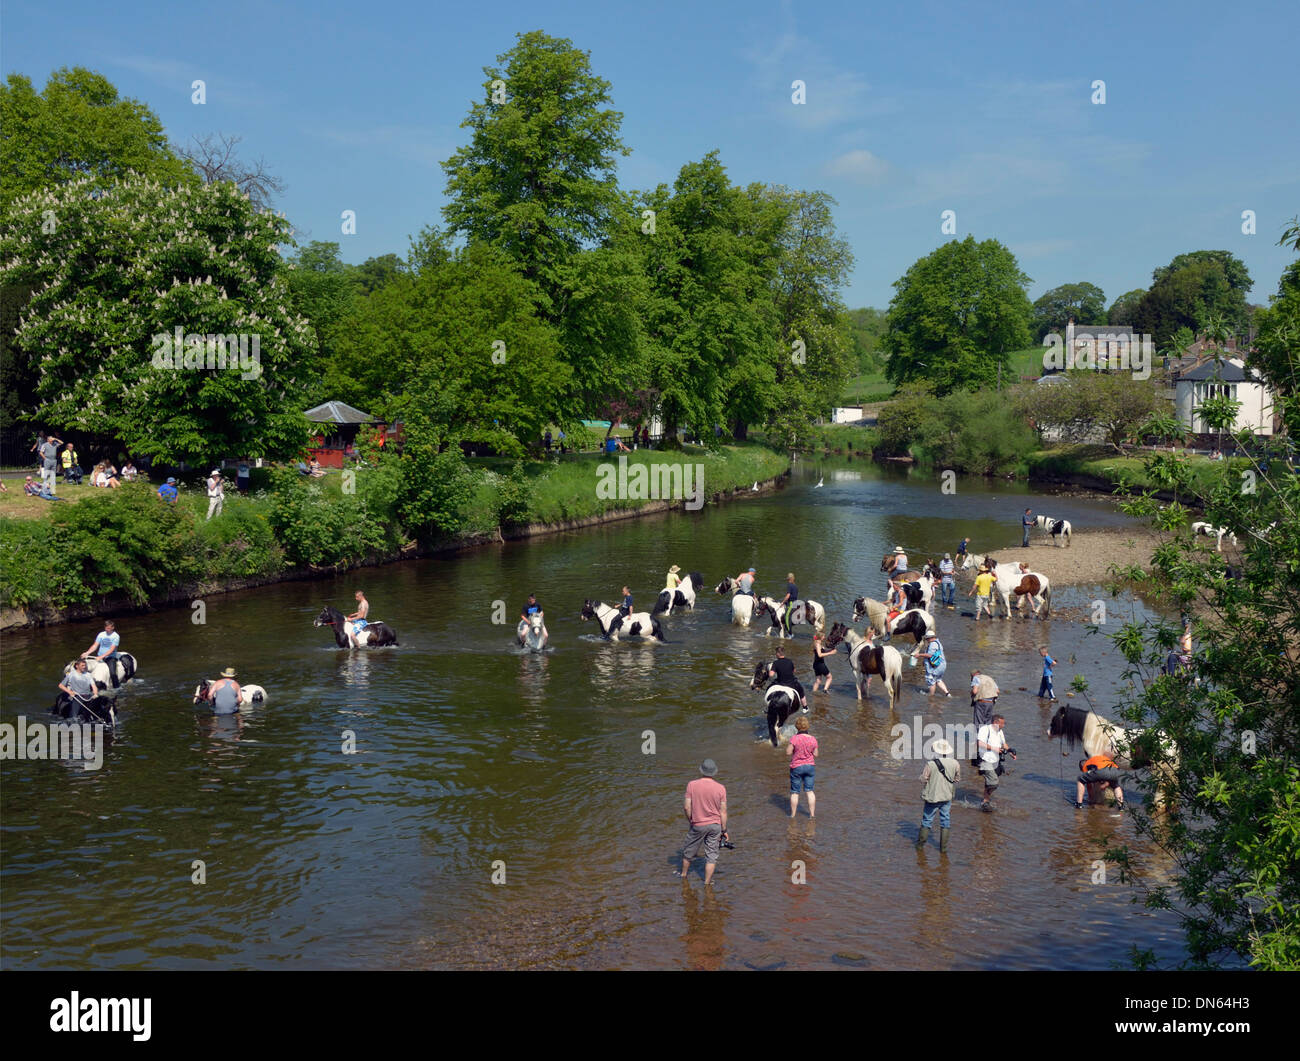 Gypsy travellers with horses in River Eden. Appleby Horse Fair, Appleby-in-Westmorland, Cumbria, England, United Kingdom, Europe - Stock Image